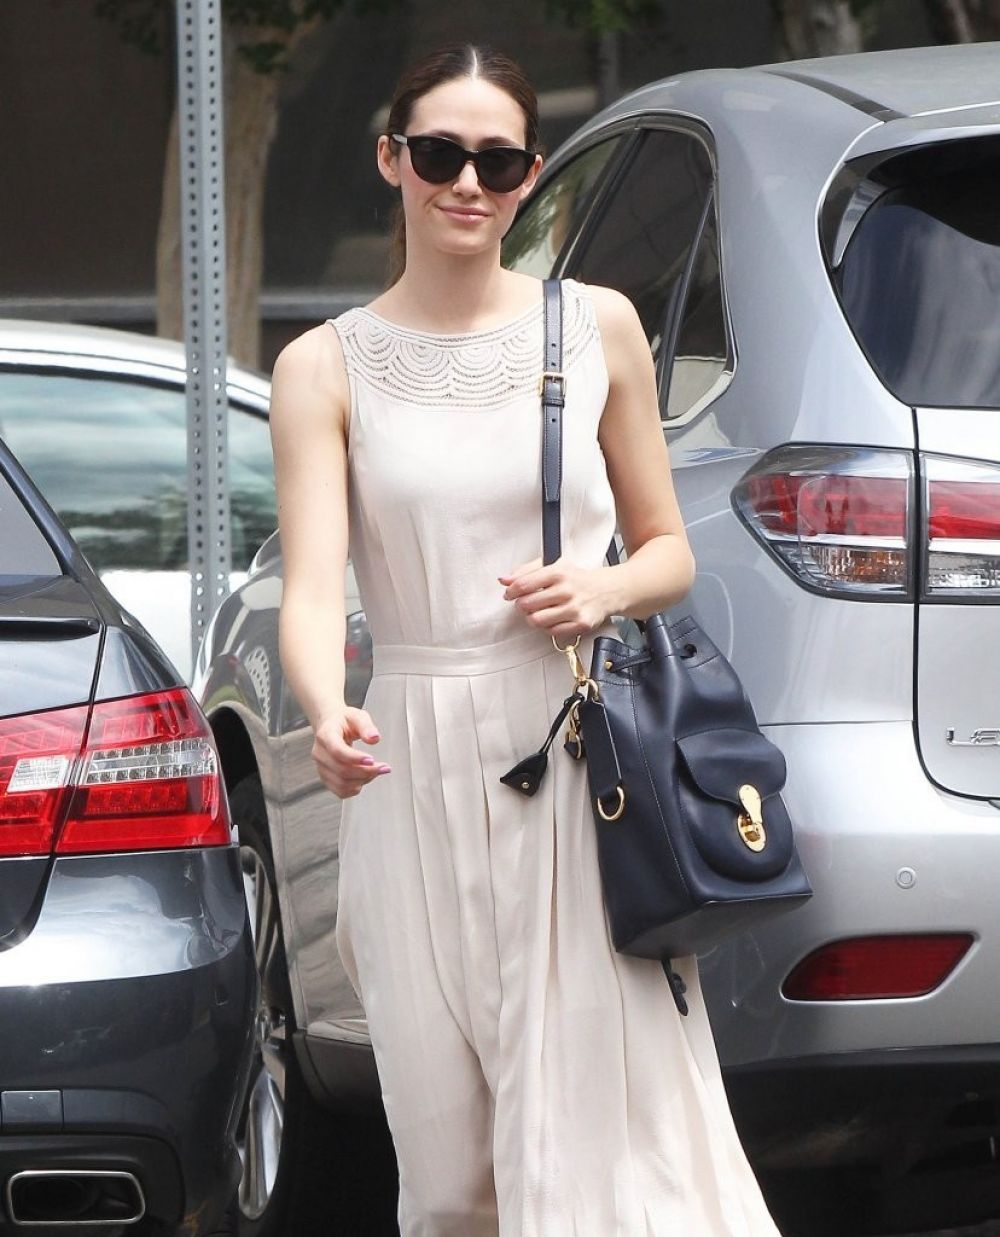 EMMY ROSSUM Out and About in Tarzana 05/04/2015